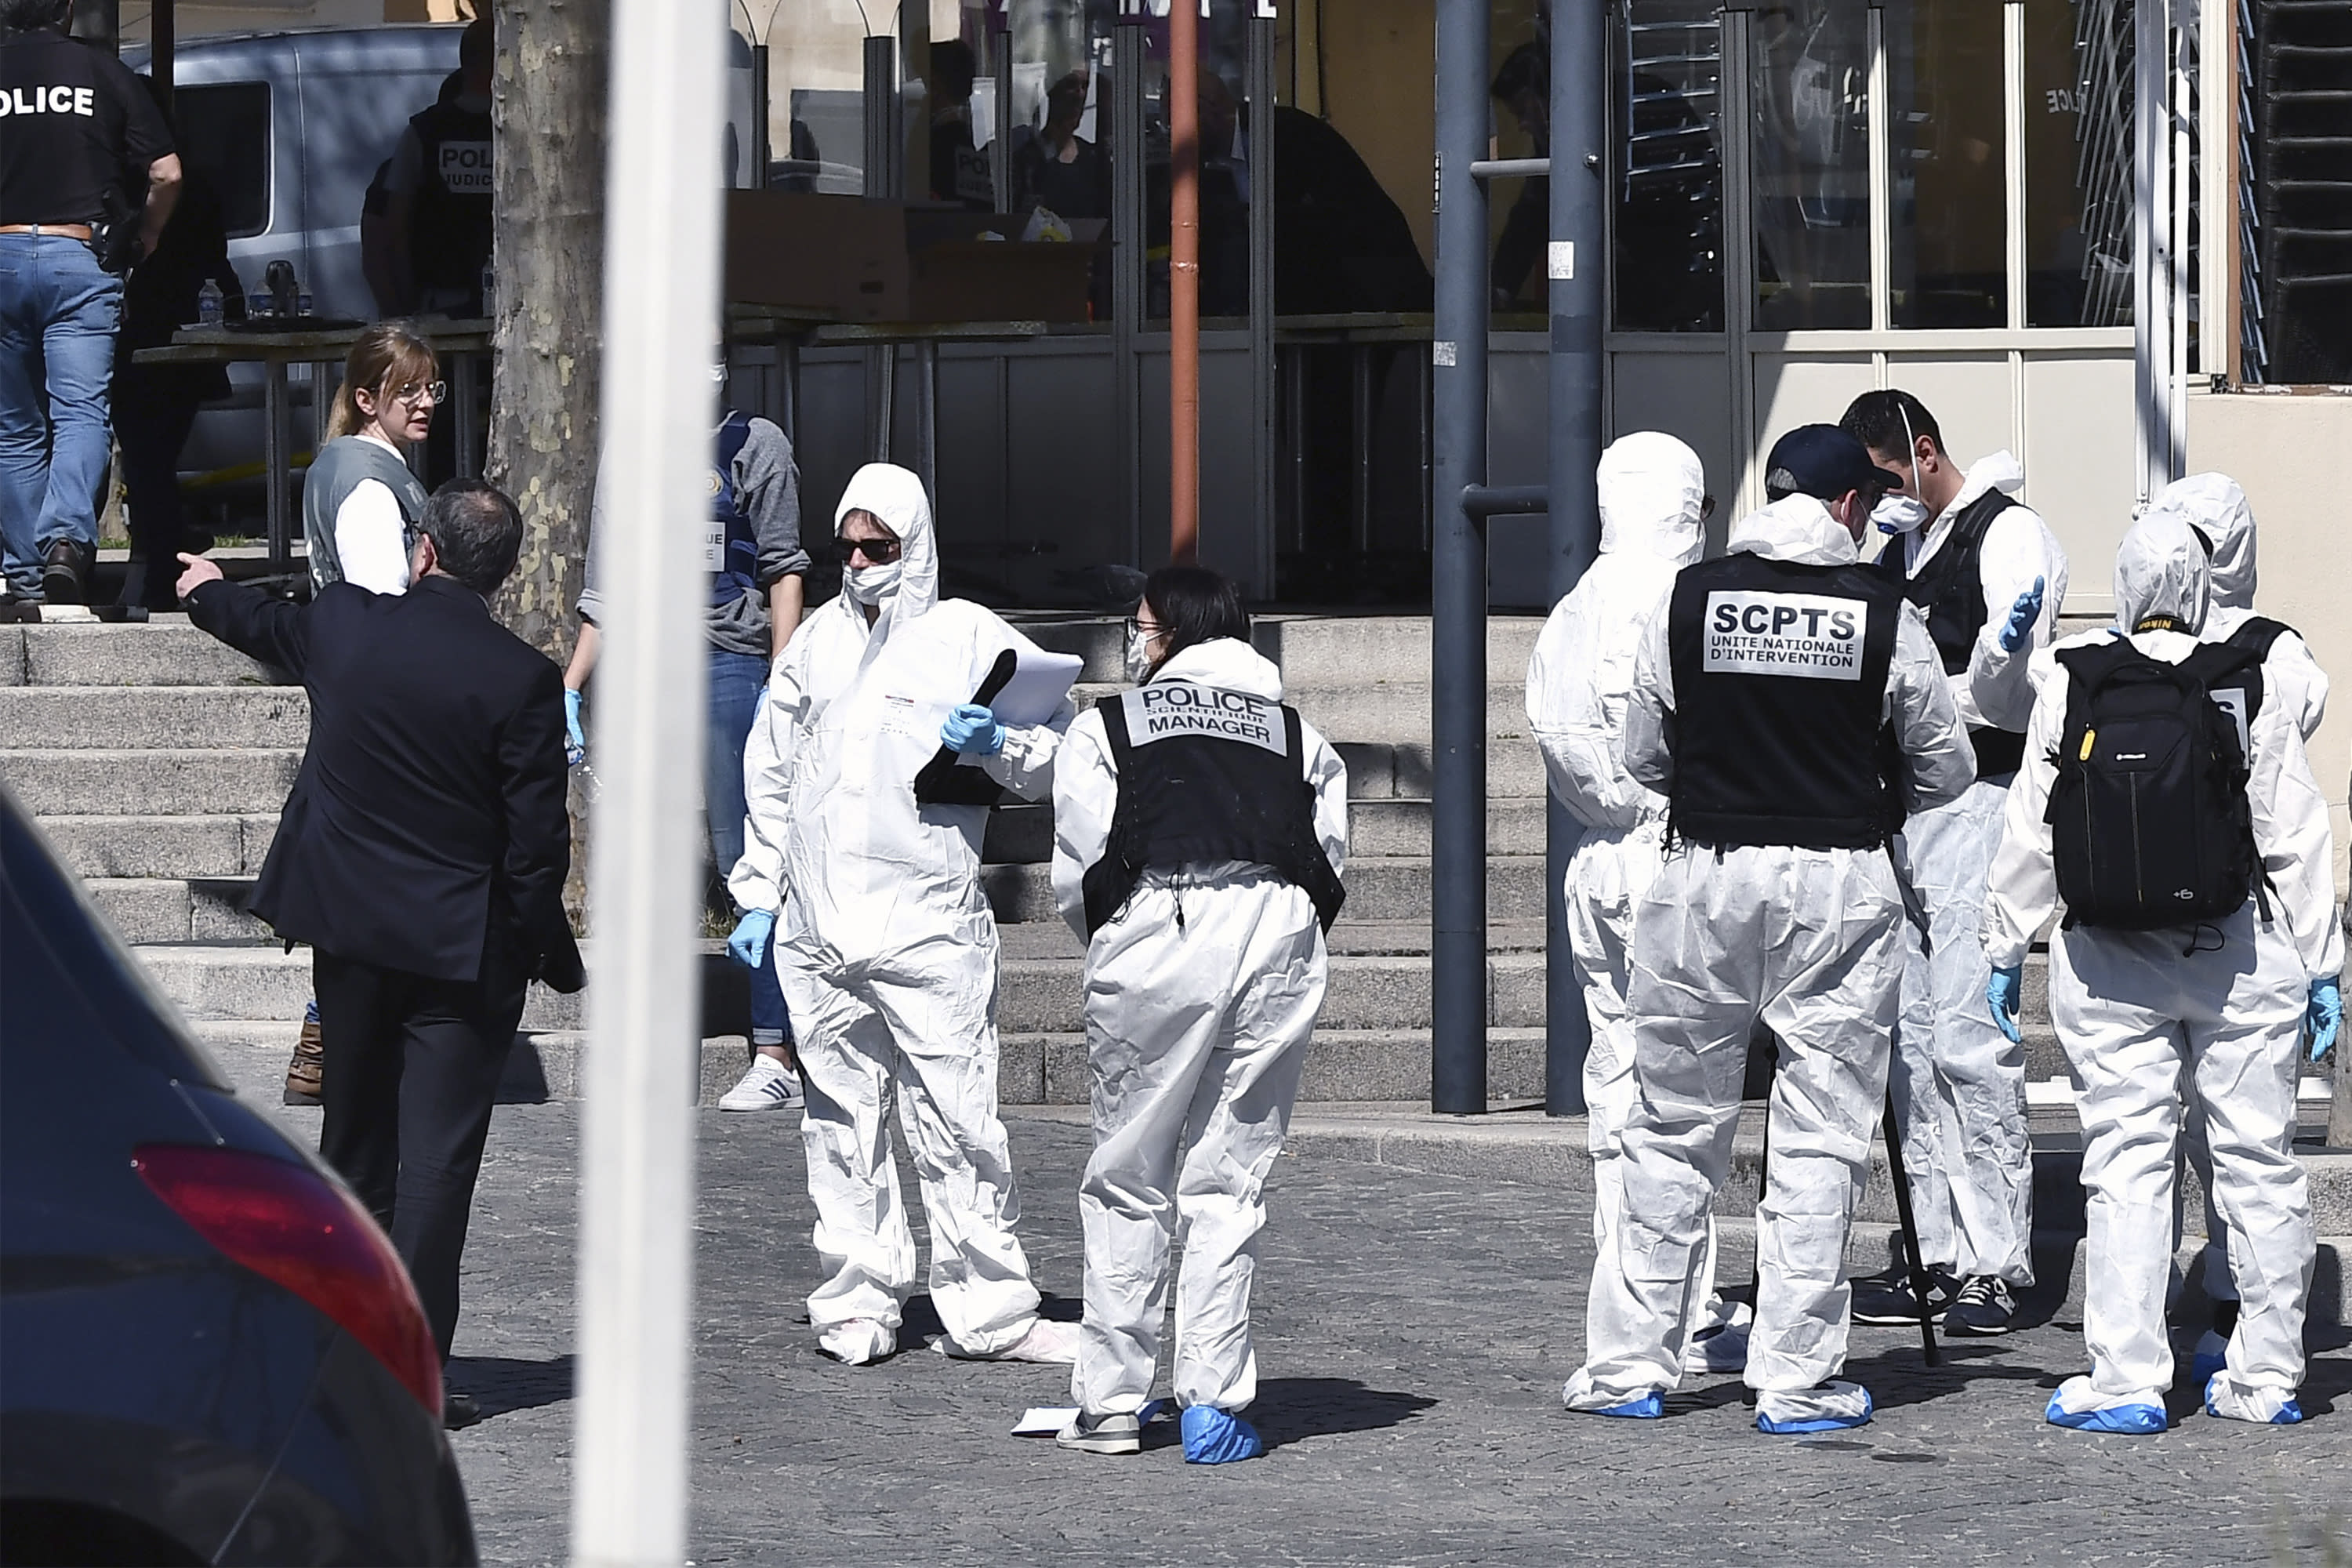 Two dead and several others injured in French knife attack